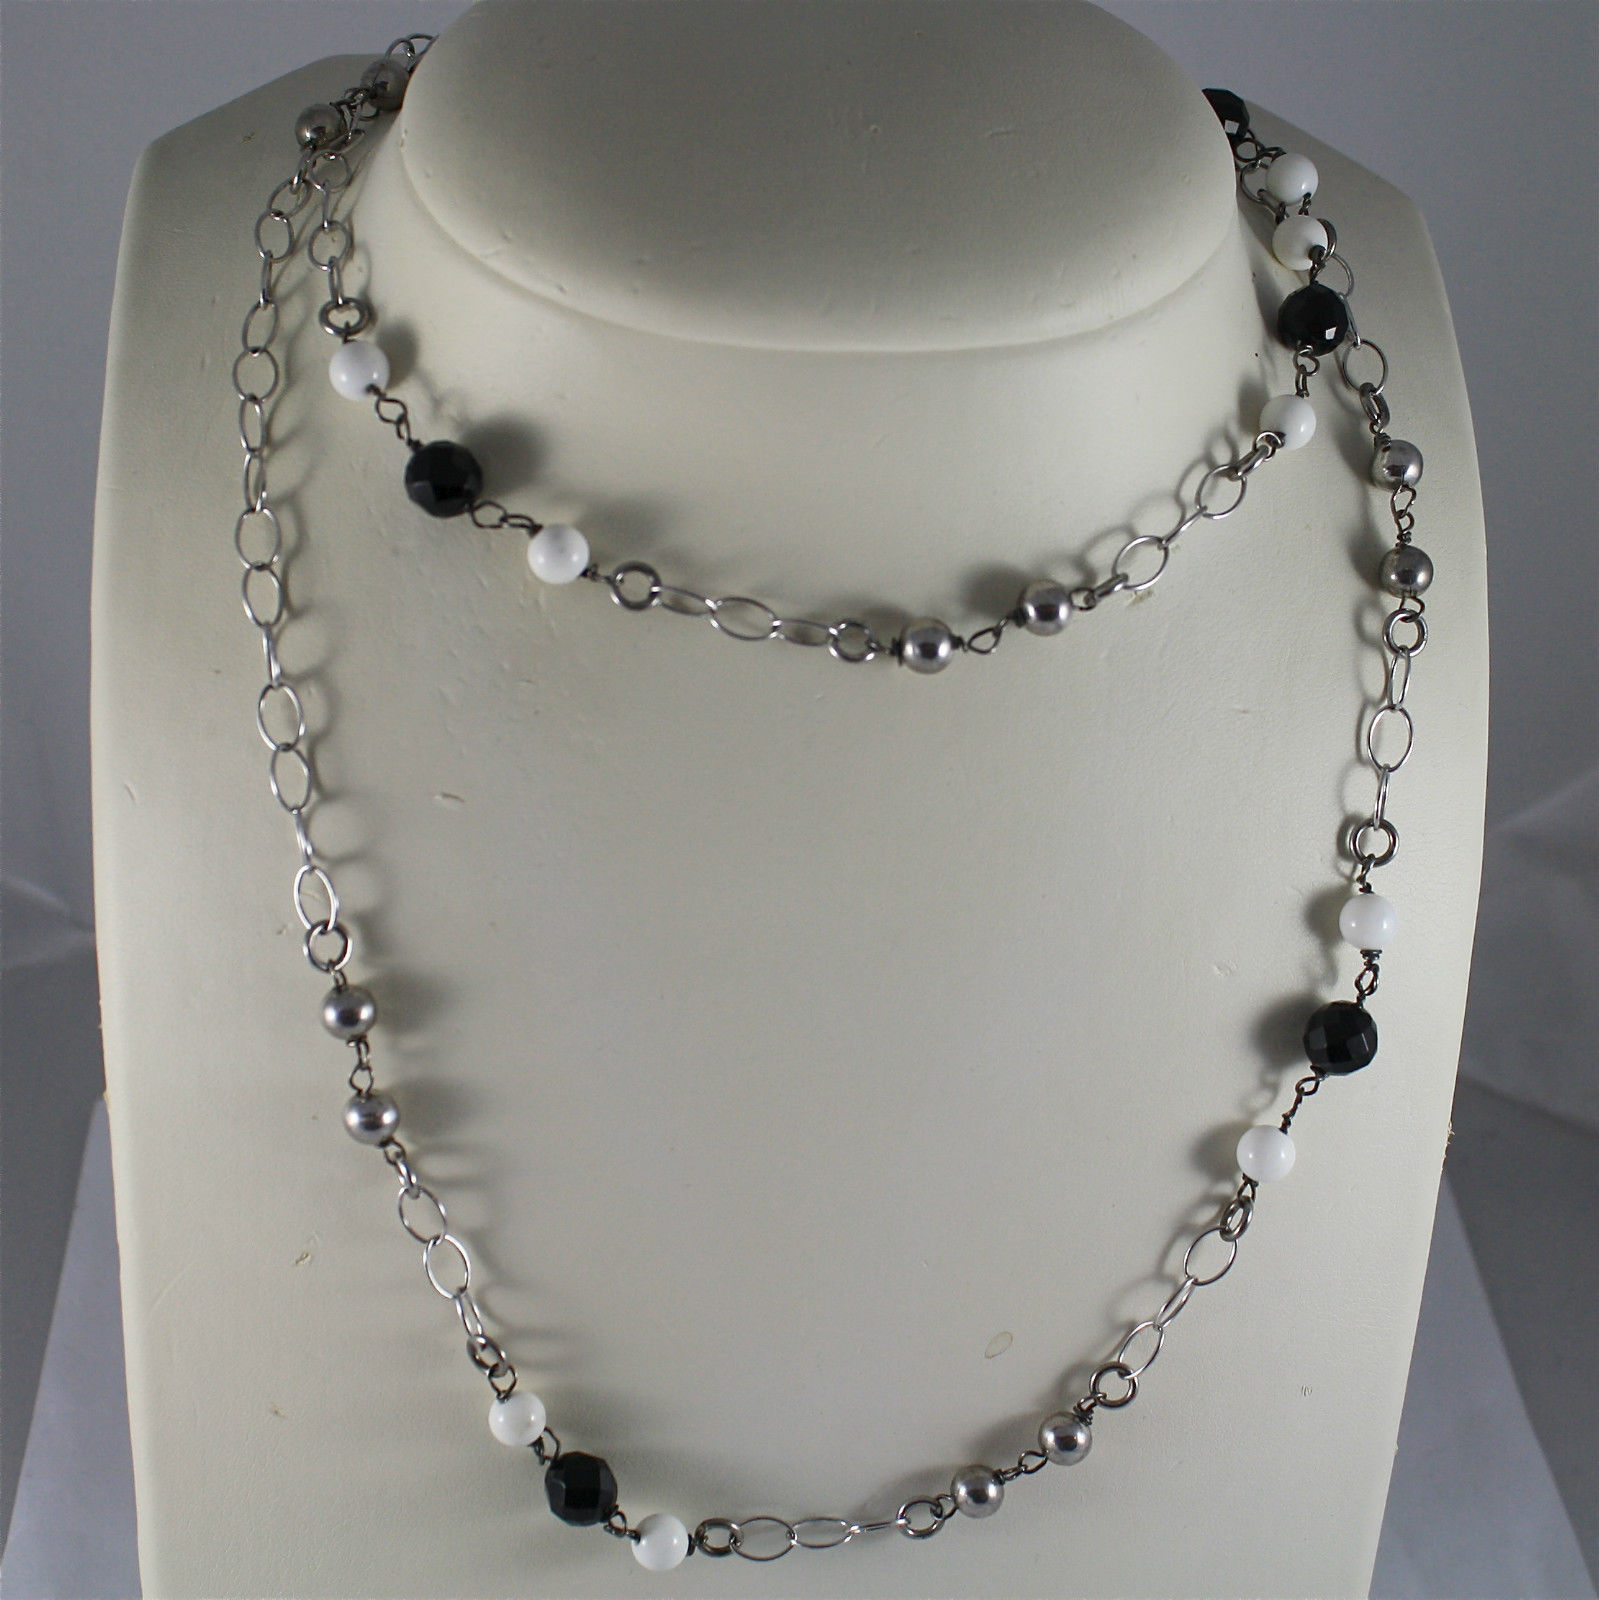 .925 RHODIUM SILVER NECKLACE, BLACK ONYX, WHITE AGATE, SILVER BALLS, OVAL MESH.